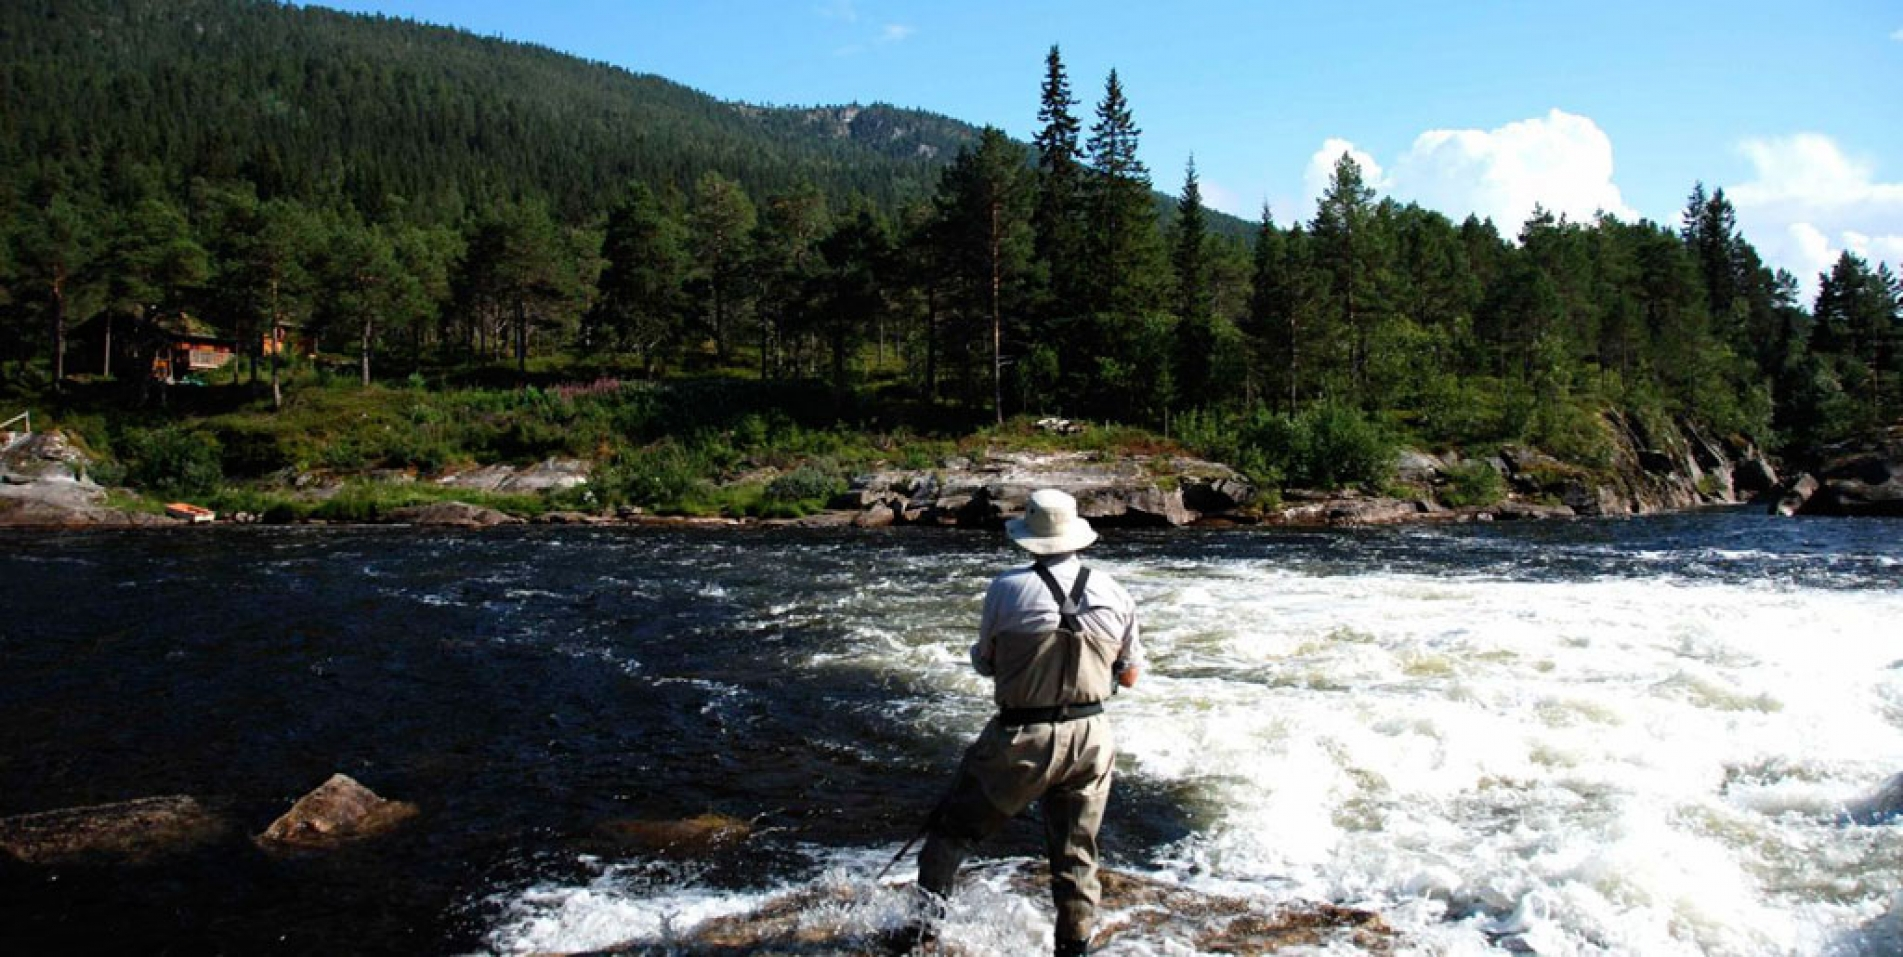 Salmon Fishing in Norway-Aunan Lodge on the Orkla River